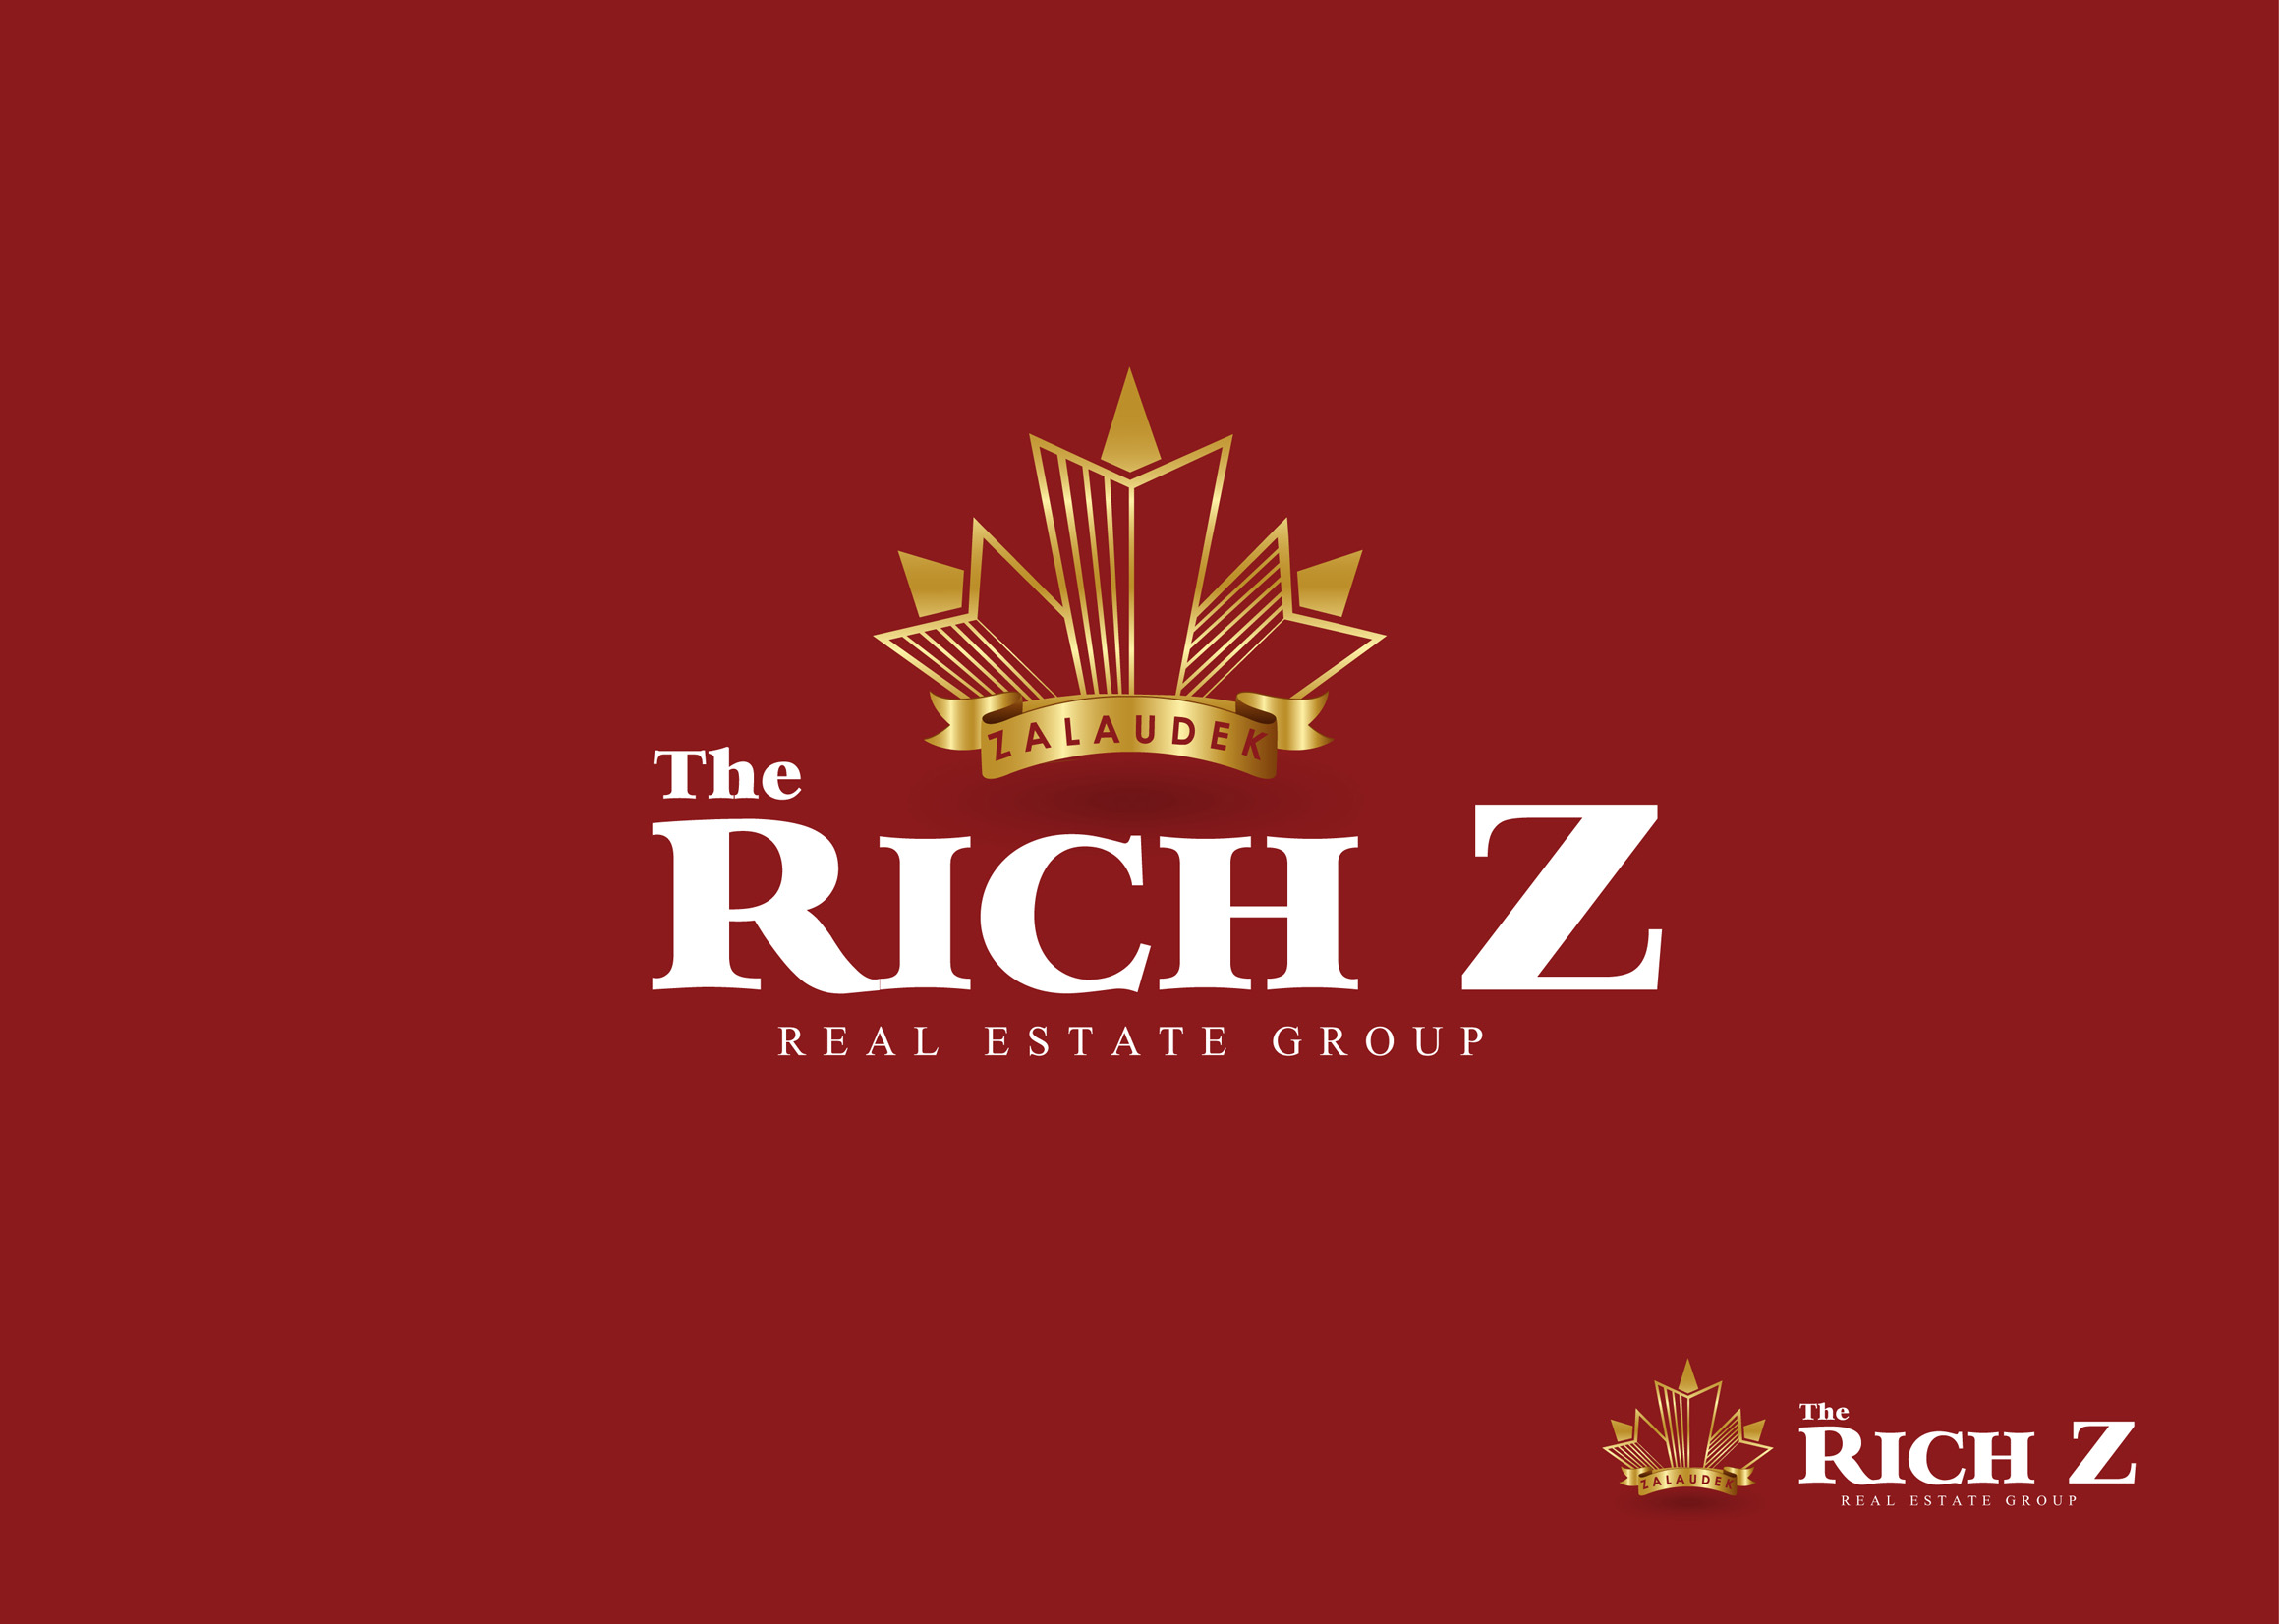 Logo Design by Mark Anthony Moreto Jordan - Entry No. 280 in the Logo Design Contest The Rich Z. Real Estate Group Logo Design.